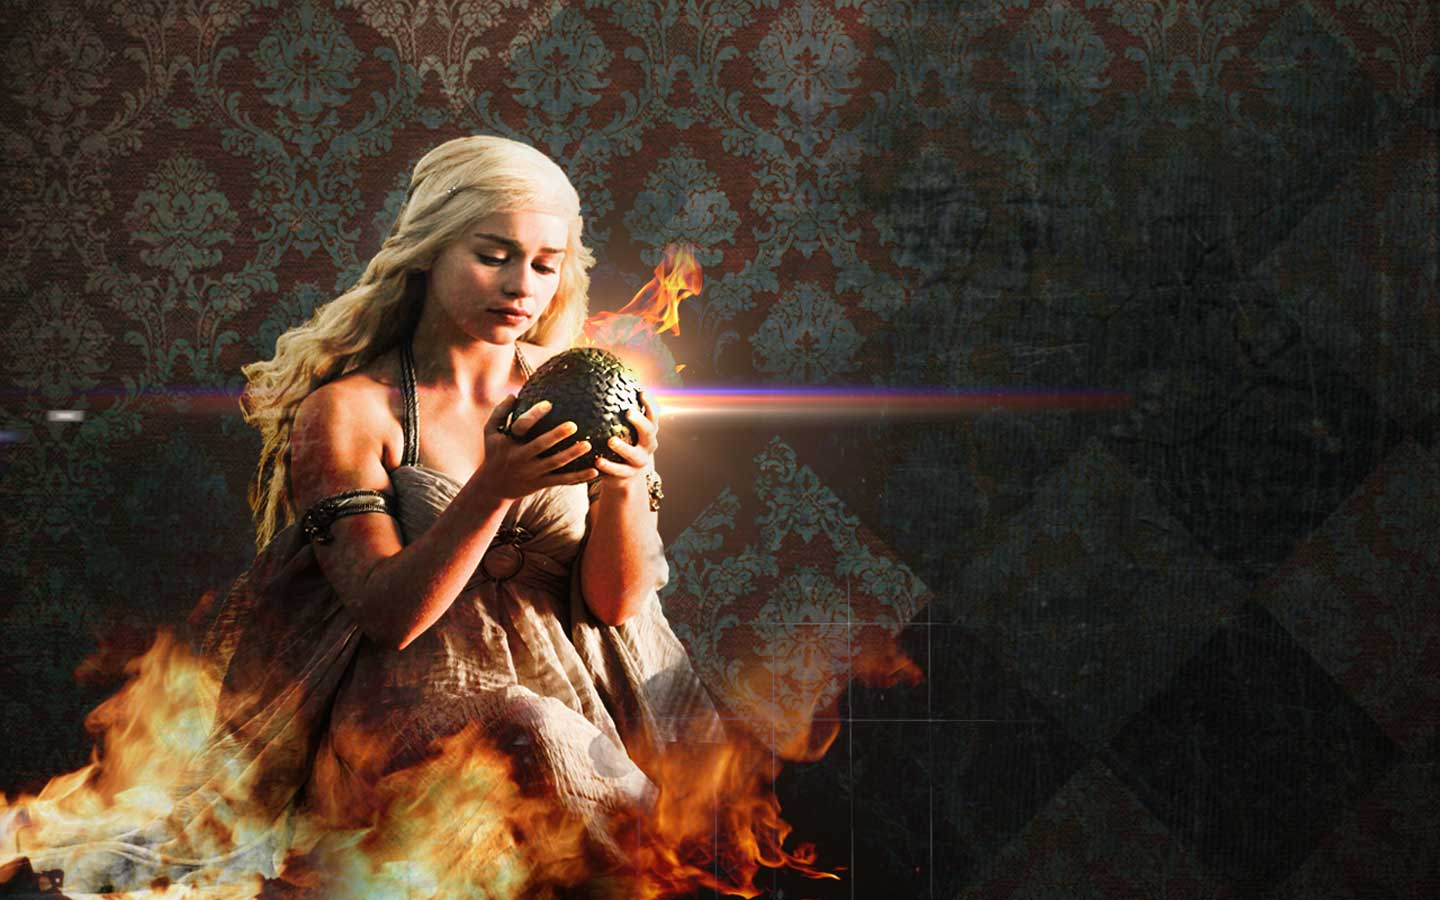 Game Of Thrones Daenerys Wallpaper: Daenerys Wallpapers